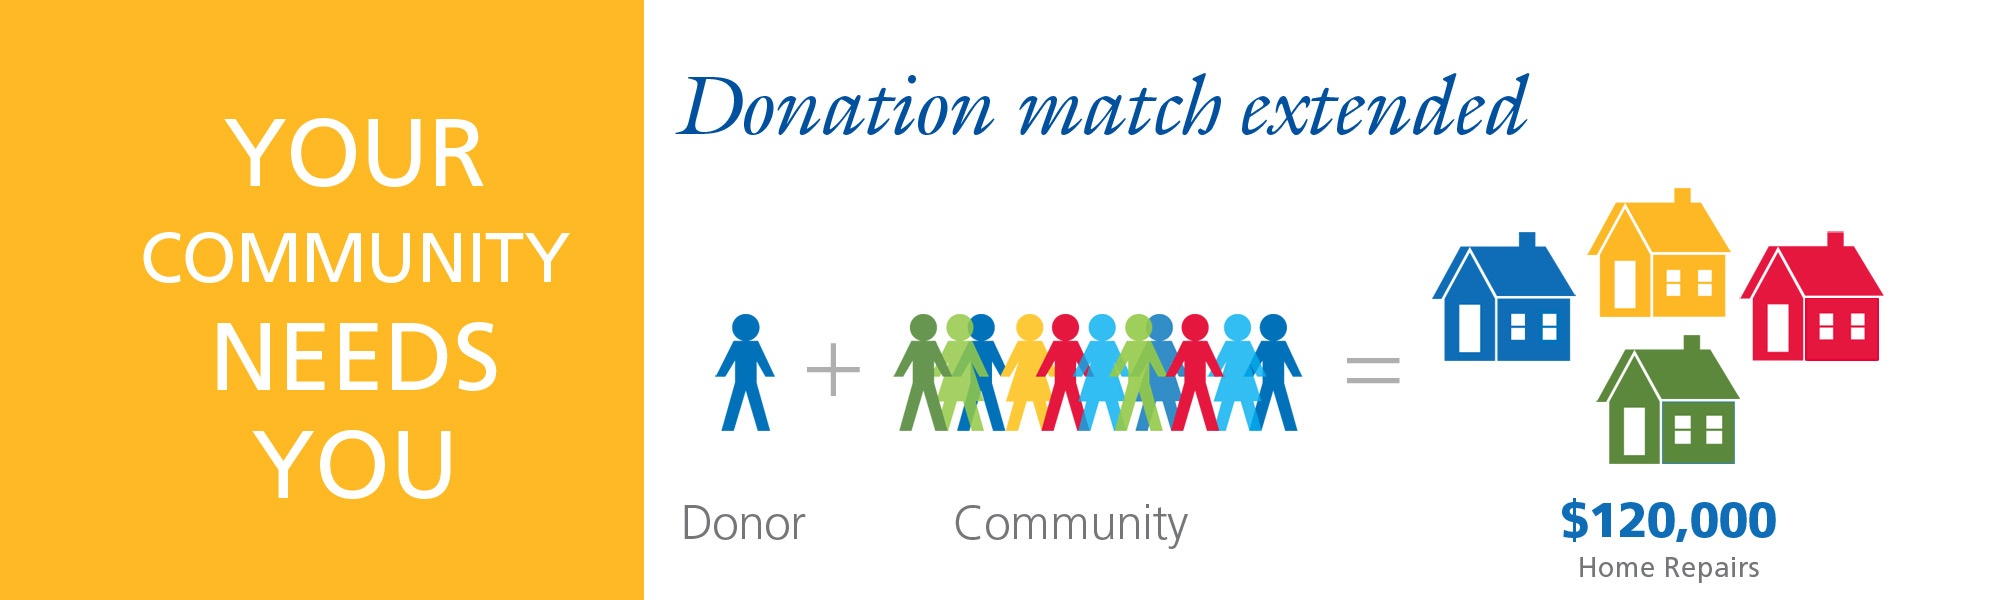 DONATION MATCH EXTENDED! All Donations to AHIP Matched Dollar for Dollar to Help Keep More Local Neighbors Safe at Home